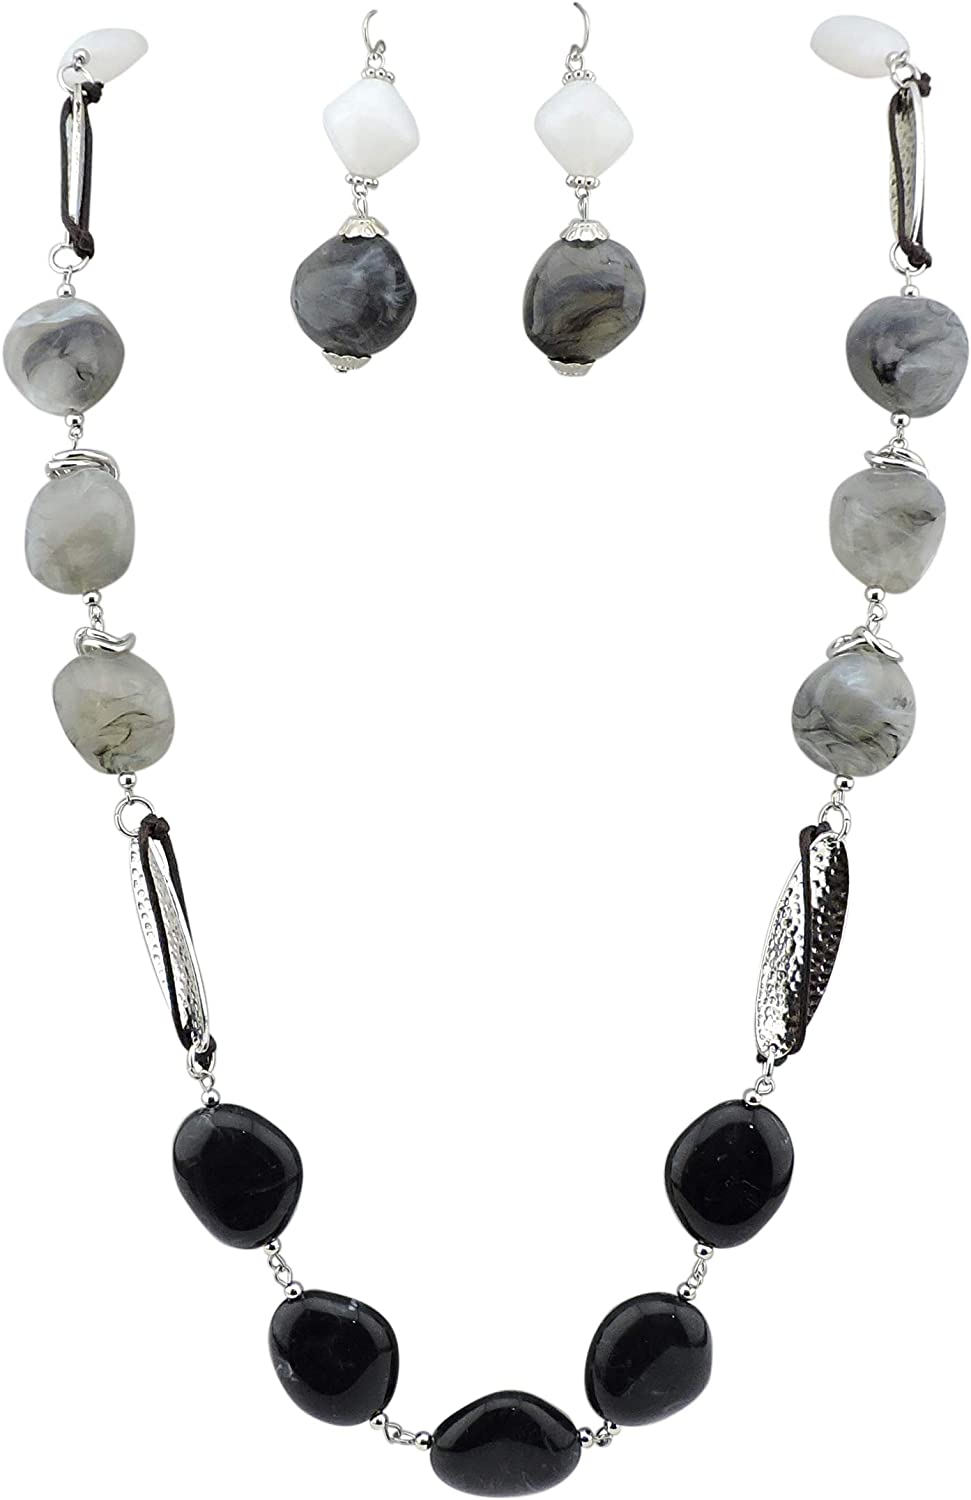 Bocar Newest Long Chunky Beads Necklace and Earrings Set for Women Gift